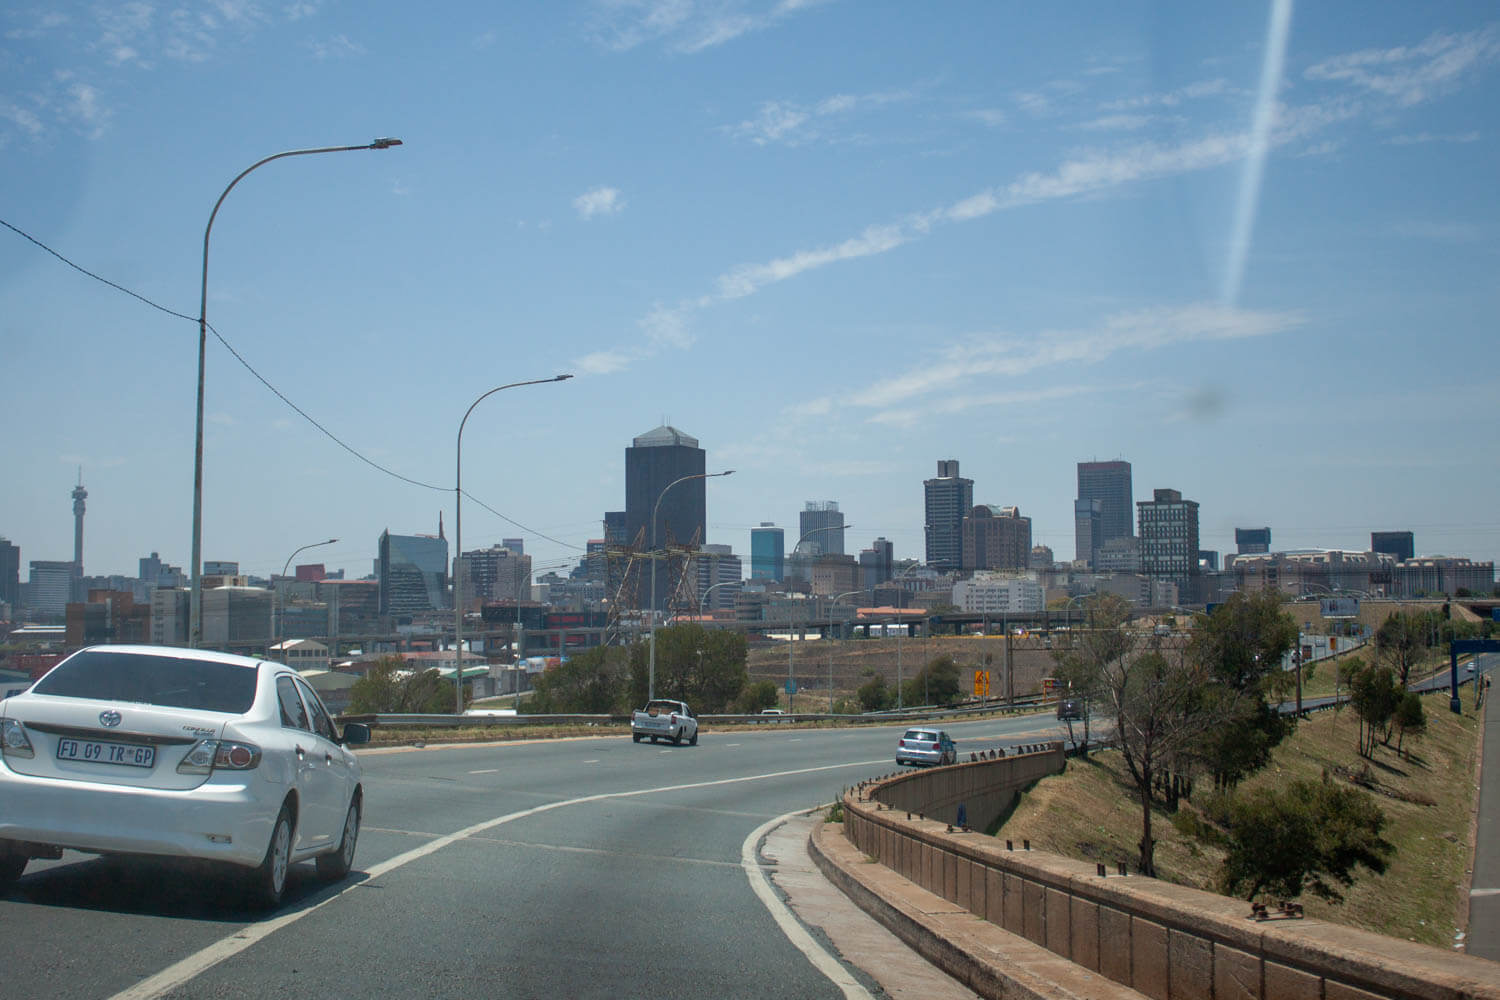 view of downtown Johannesburg from the highway